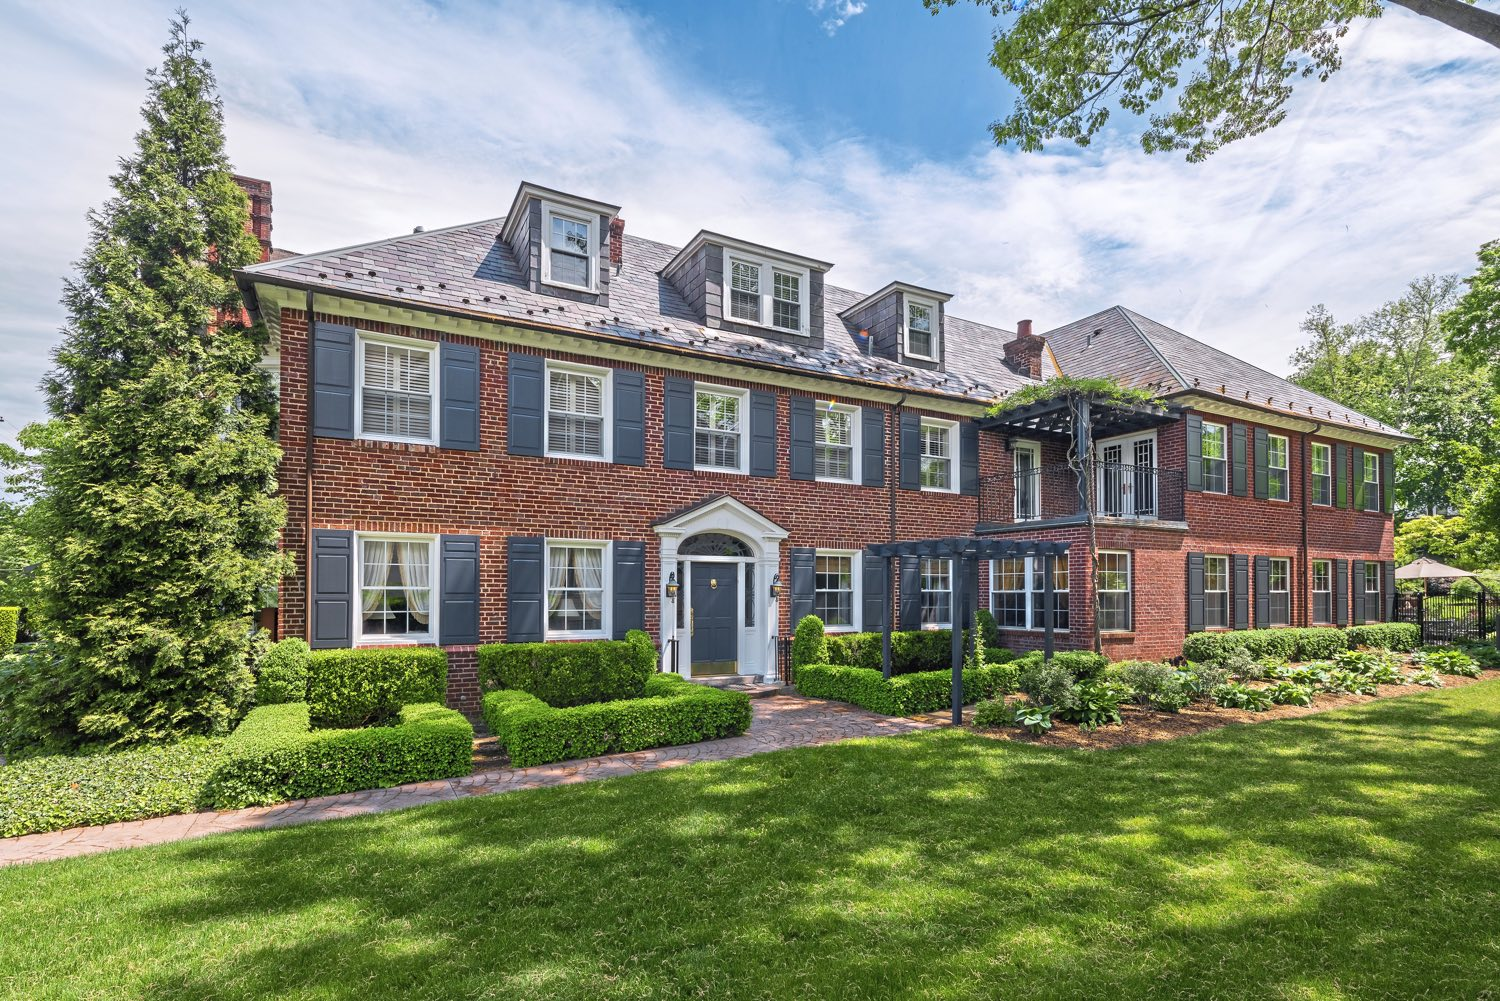 Exterior of the nearly 100 year old estate at 5228 Westminster Road, Shadyside - asking $3,450,000. (Howard Hanna Real Estate)